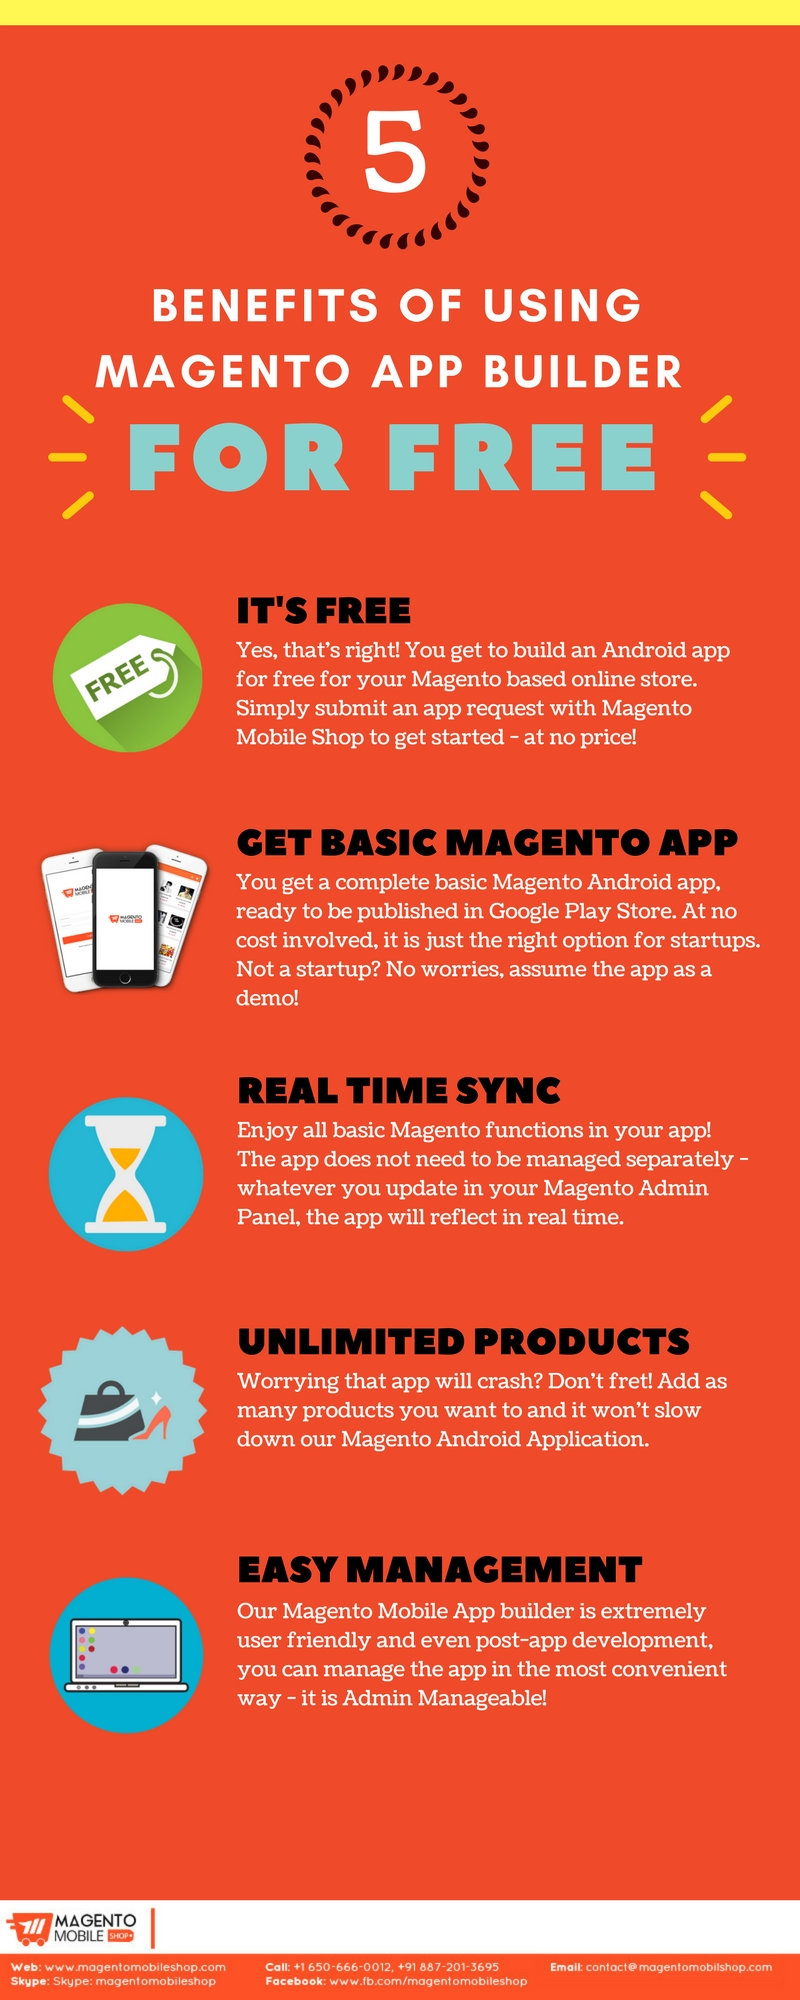 Magento Mobile App Builder Benefits